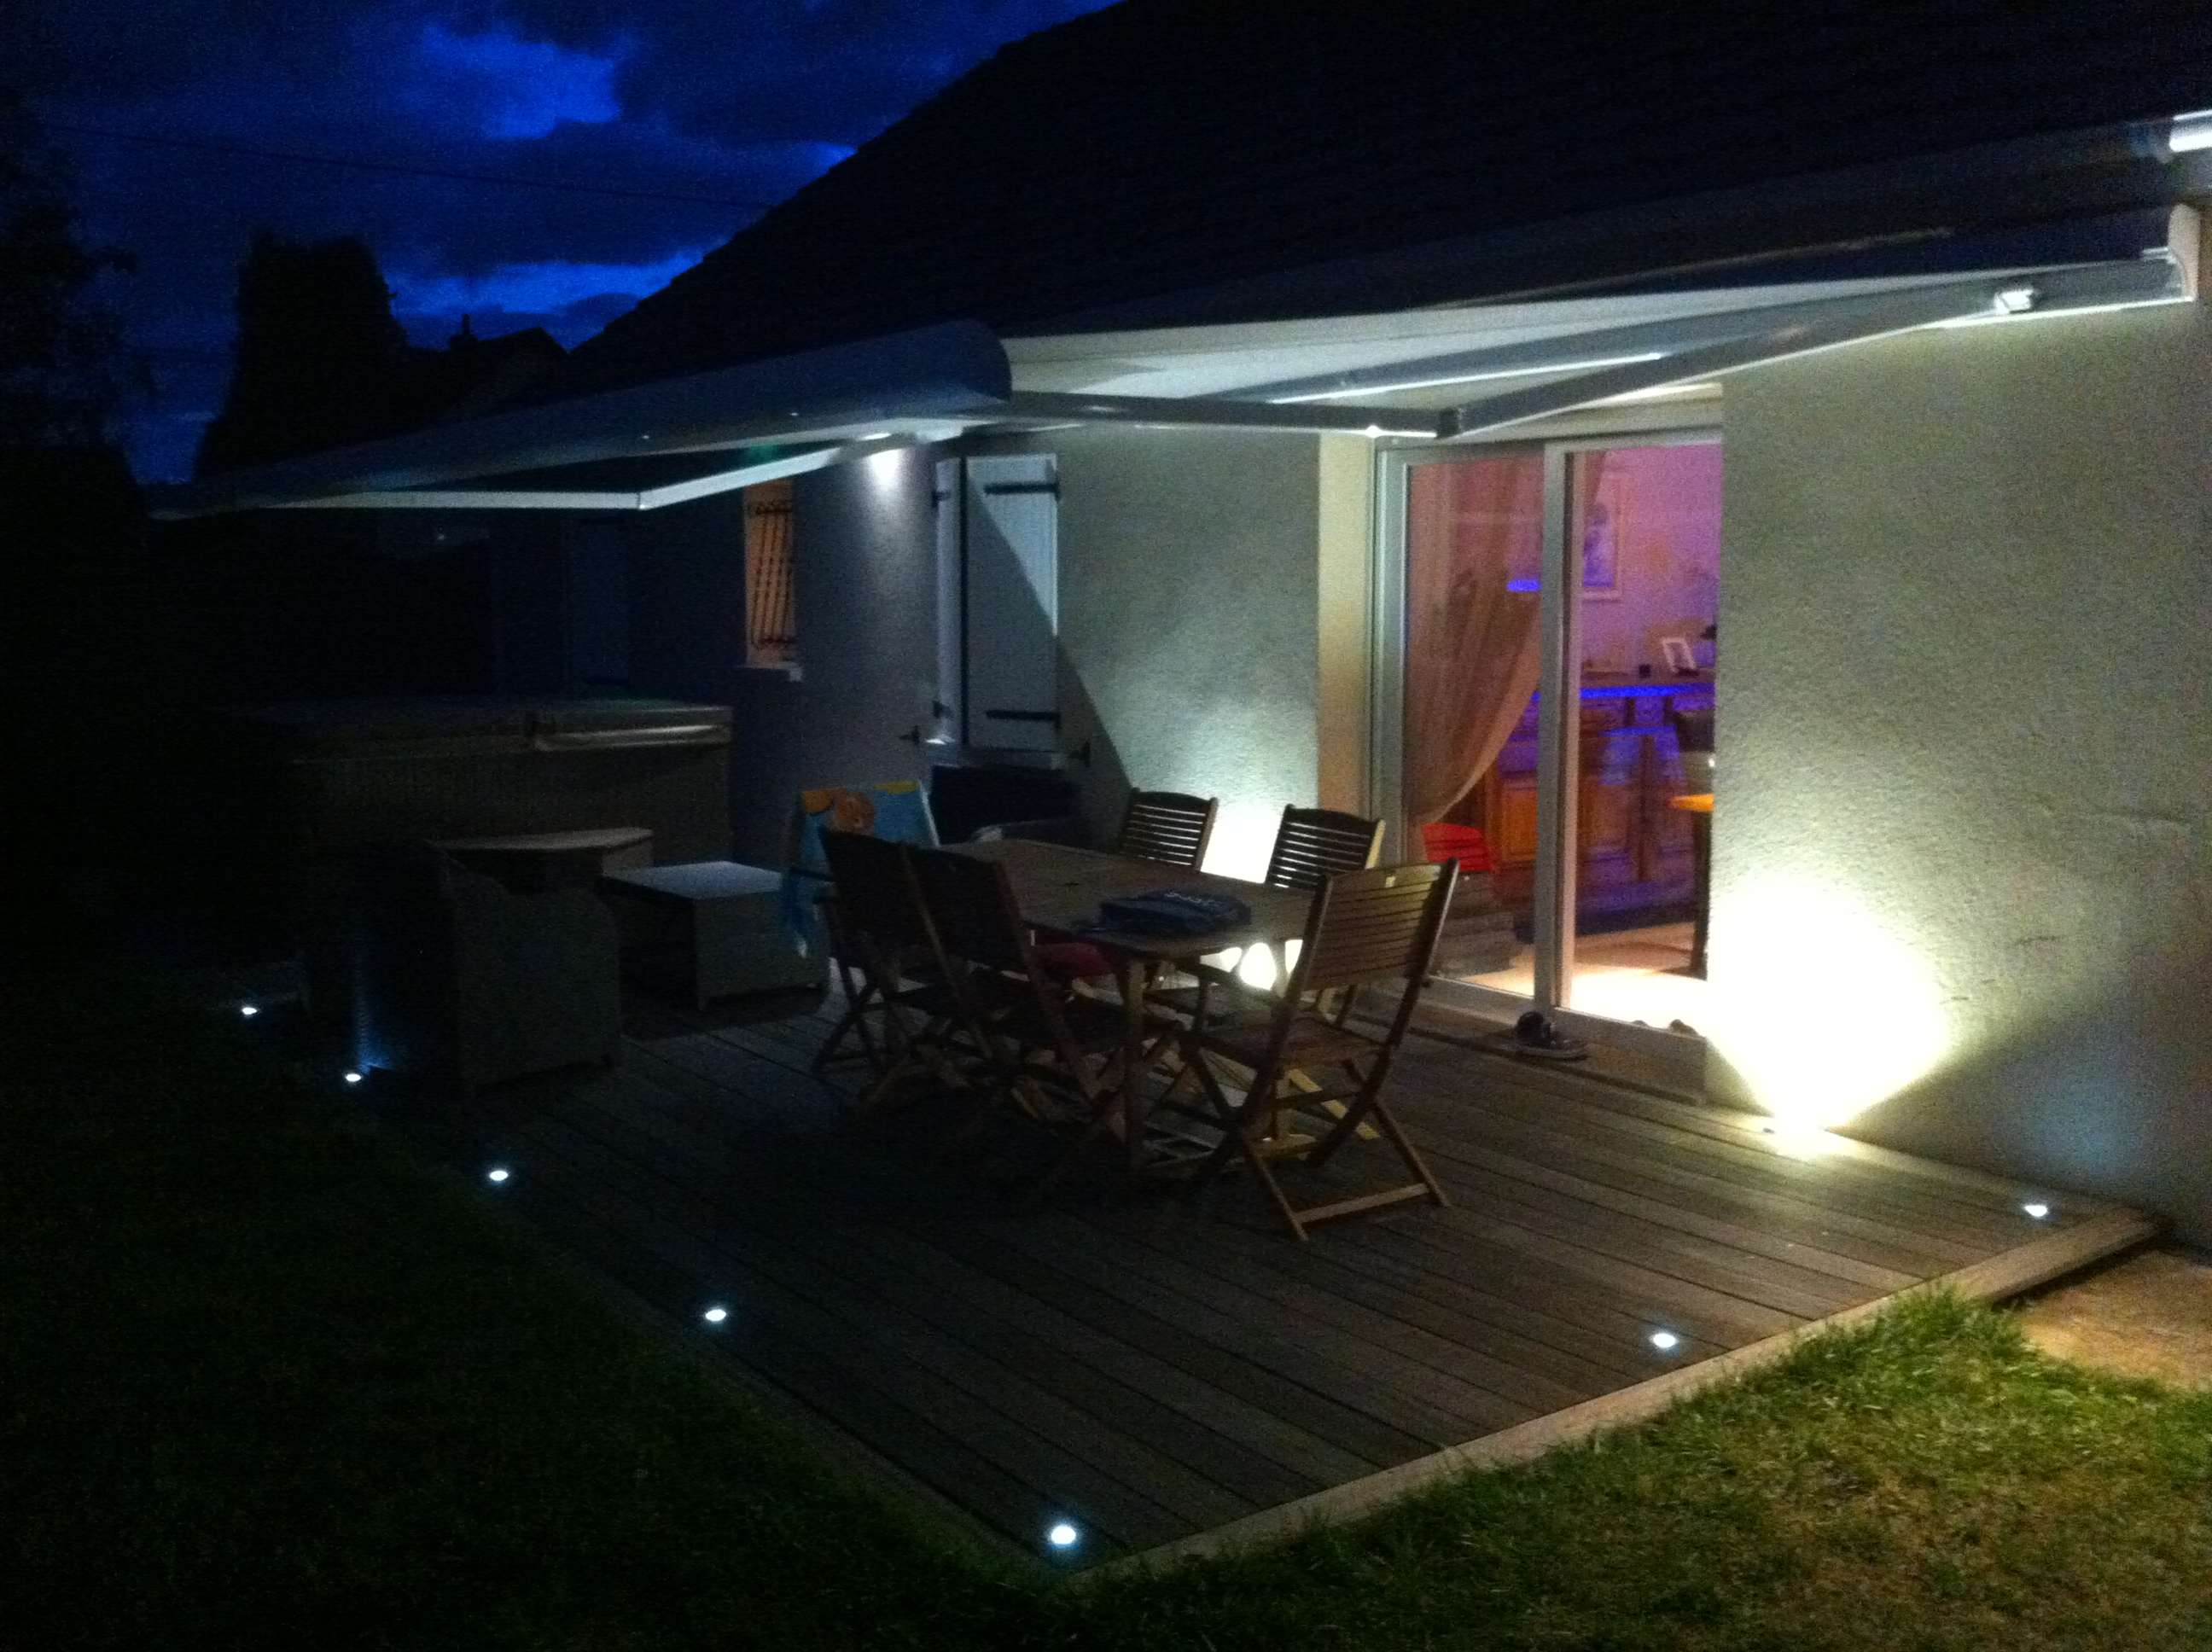 Eclairage terrasse ext rieure avec spots led lc electricit for Lumiere led terrasse